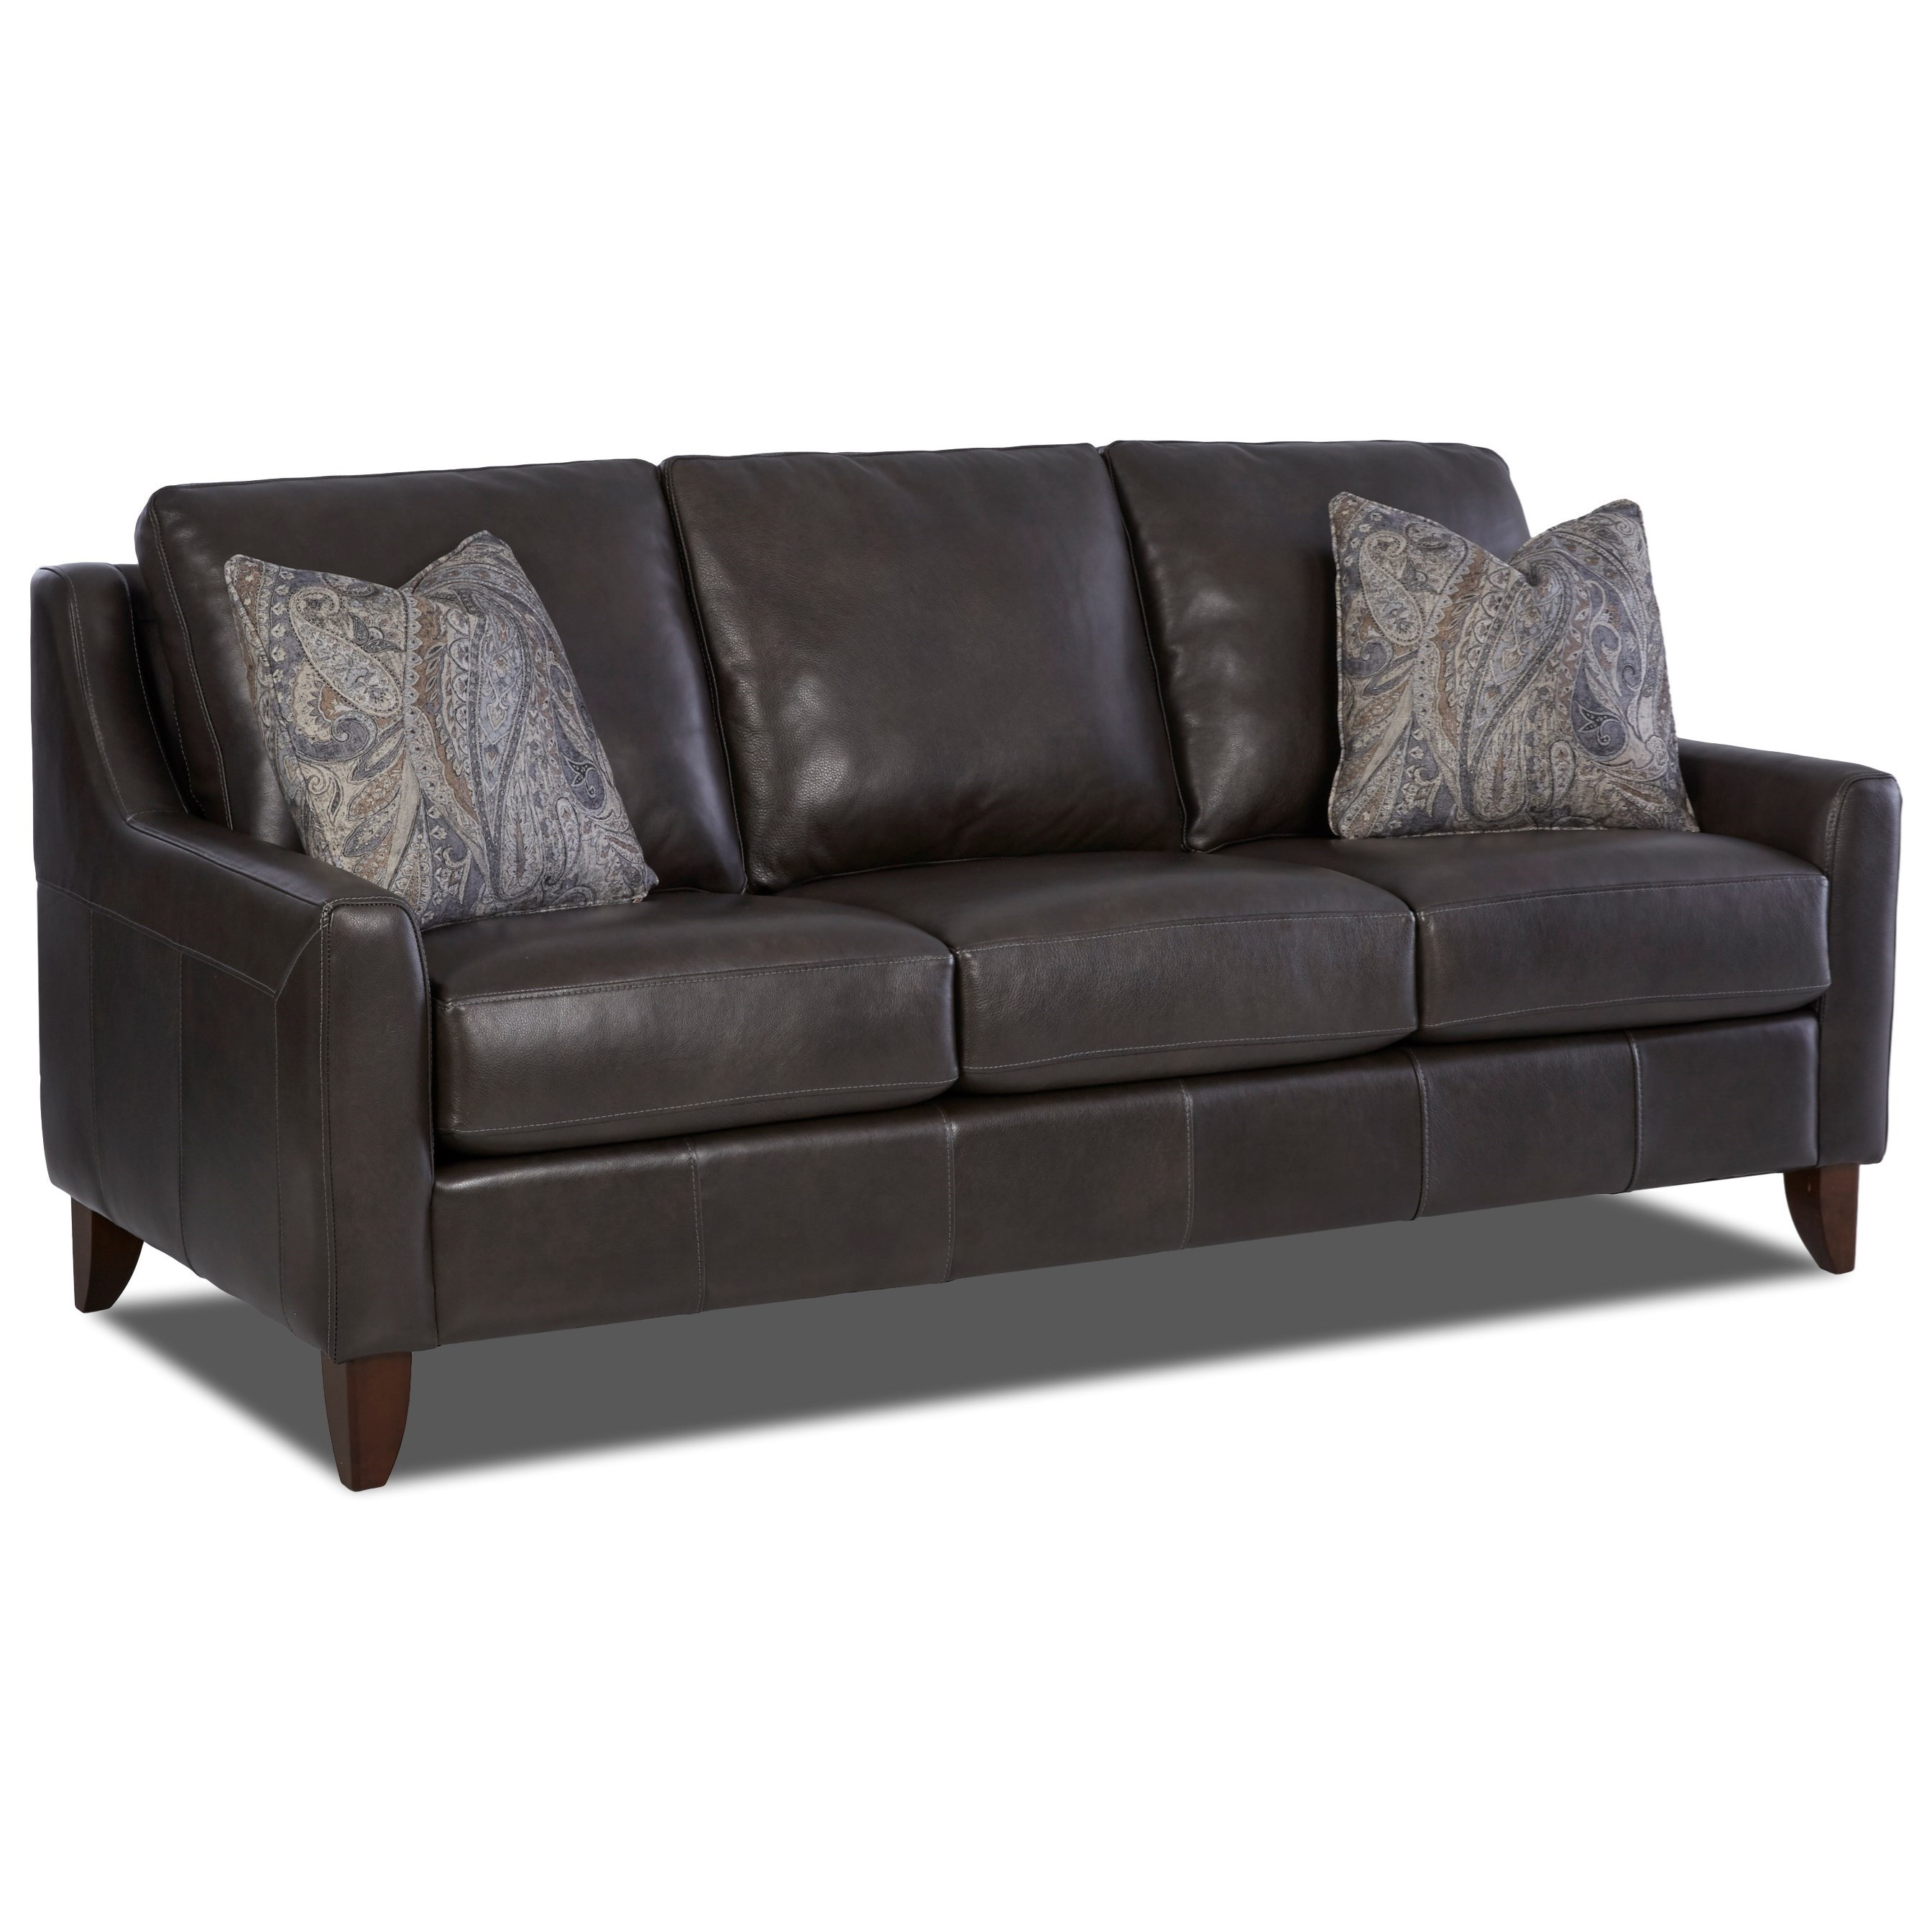 Klaussner belton leather sofa with track arms and fabric for Cushions for leather sofas